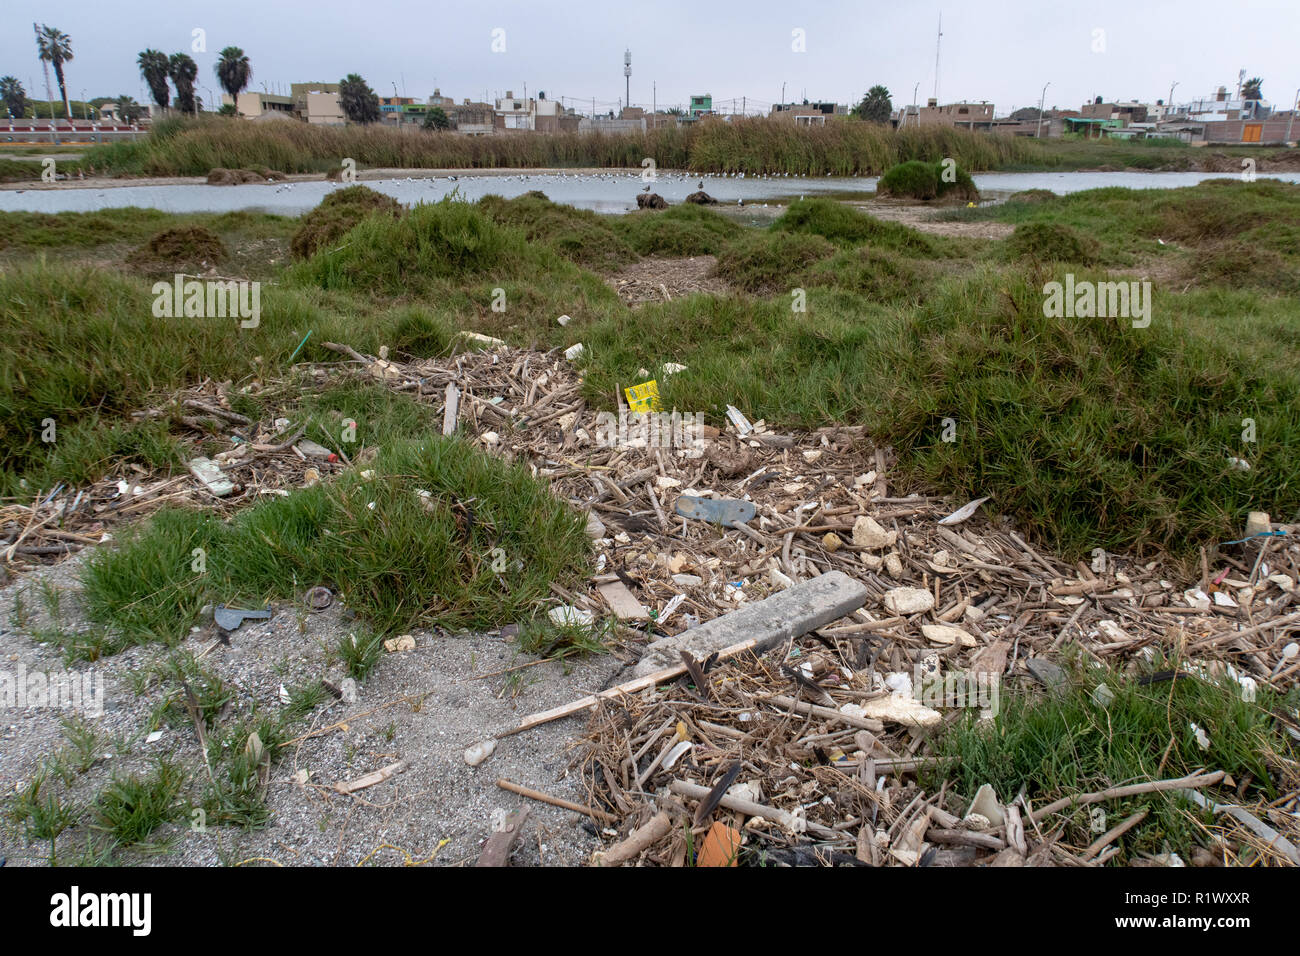 Pisco, Peru - October 19 2018: Plastics and rubbish washed up from the sea onto beaches in Peru causing environmental issues - Stock Image